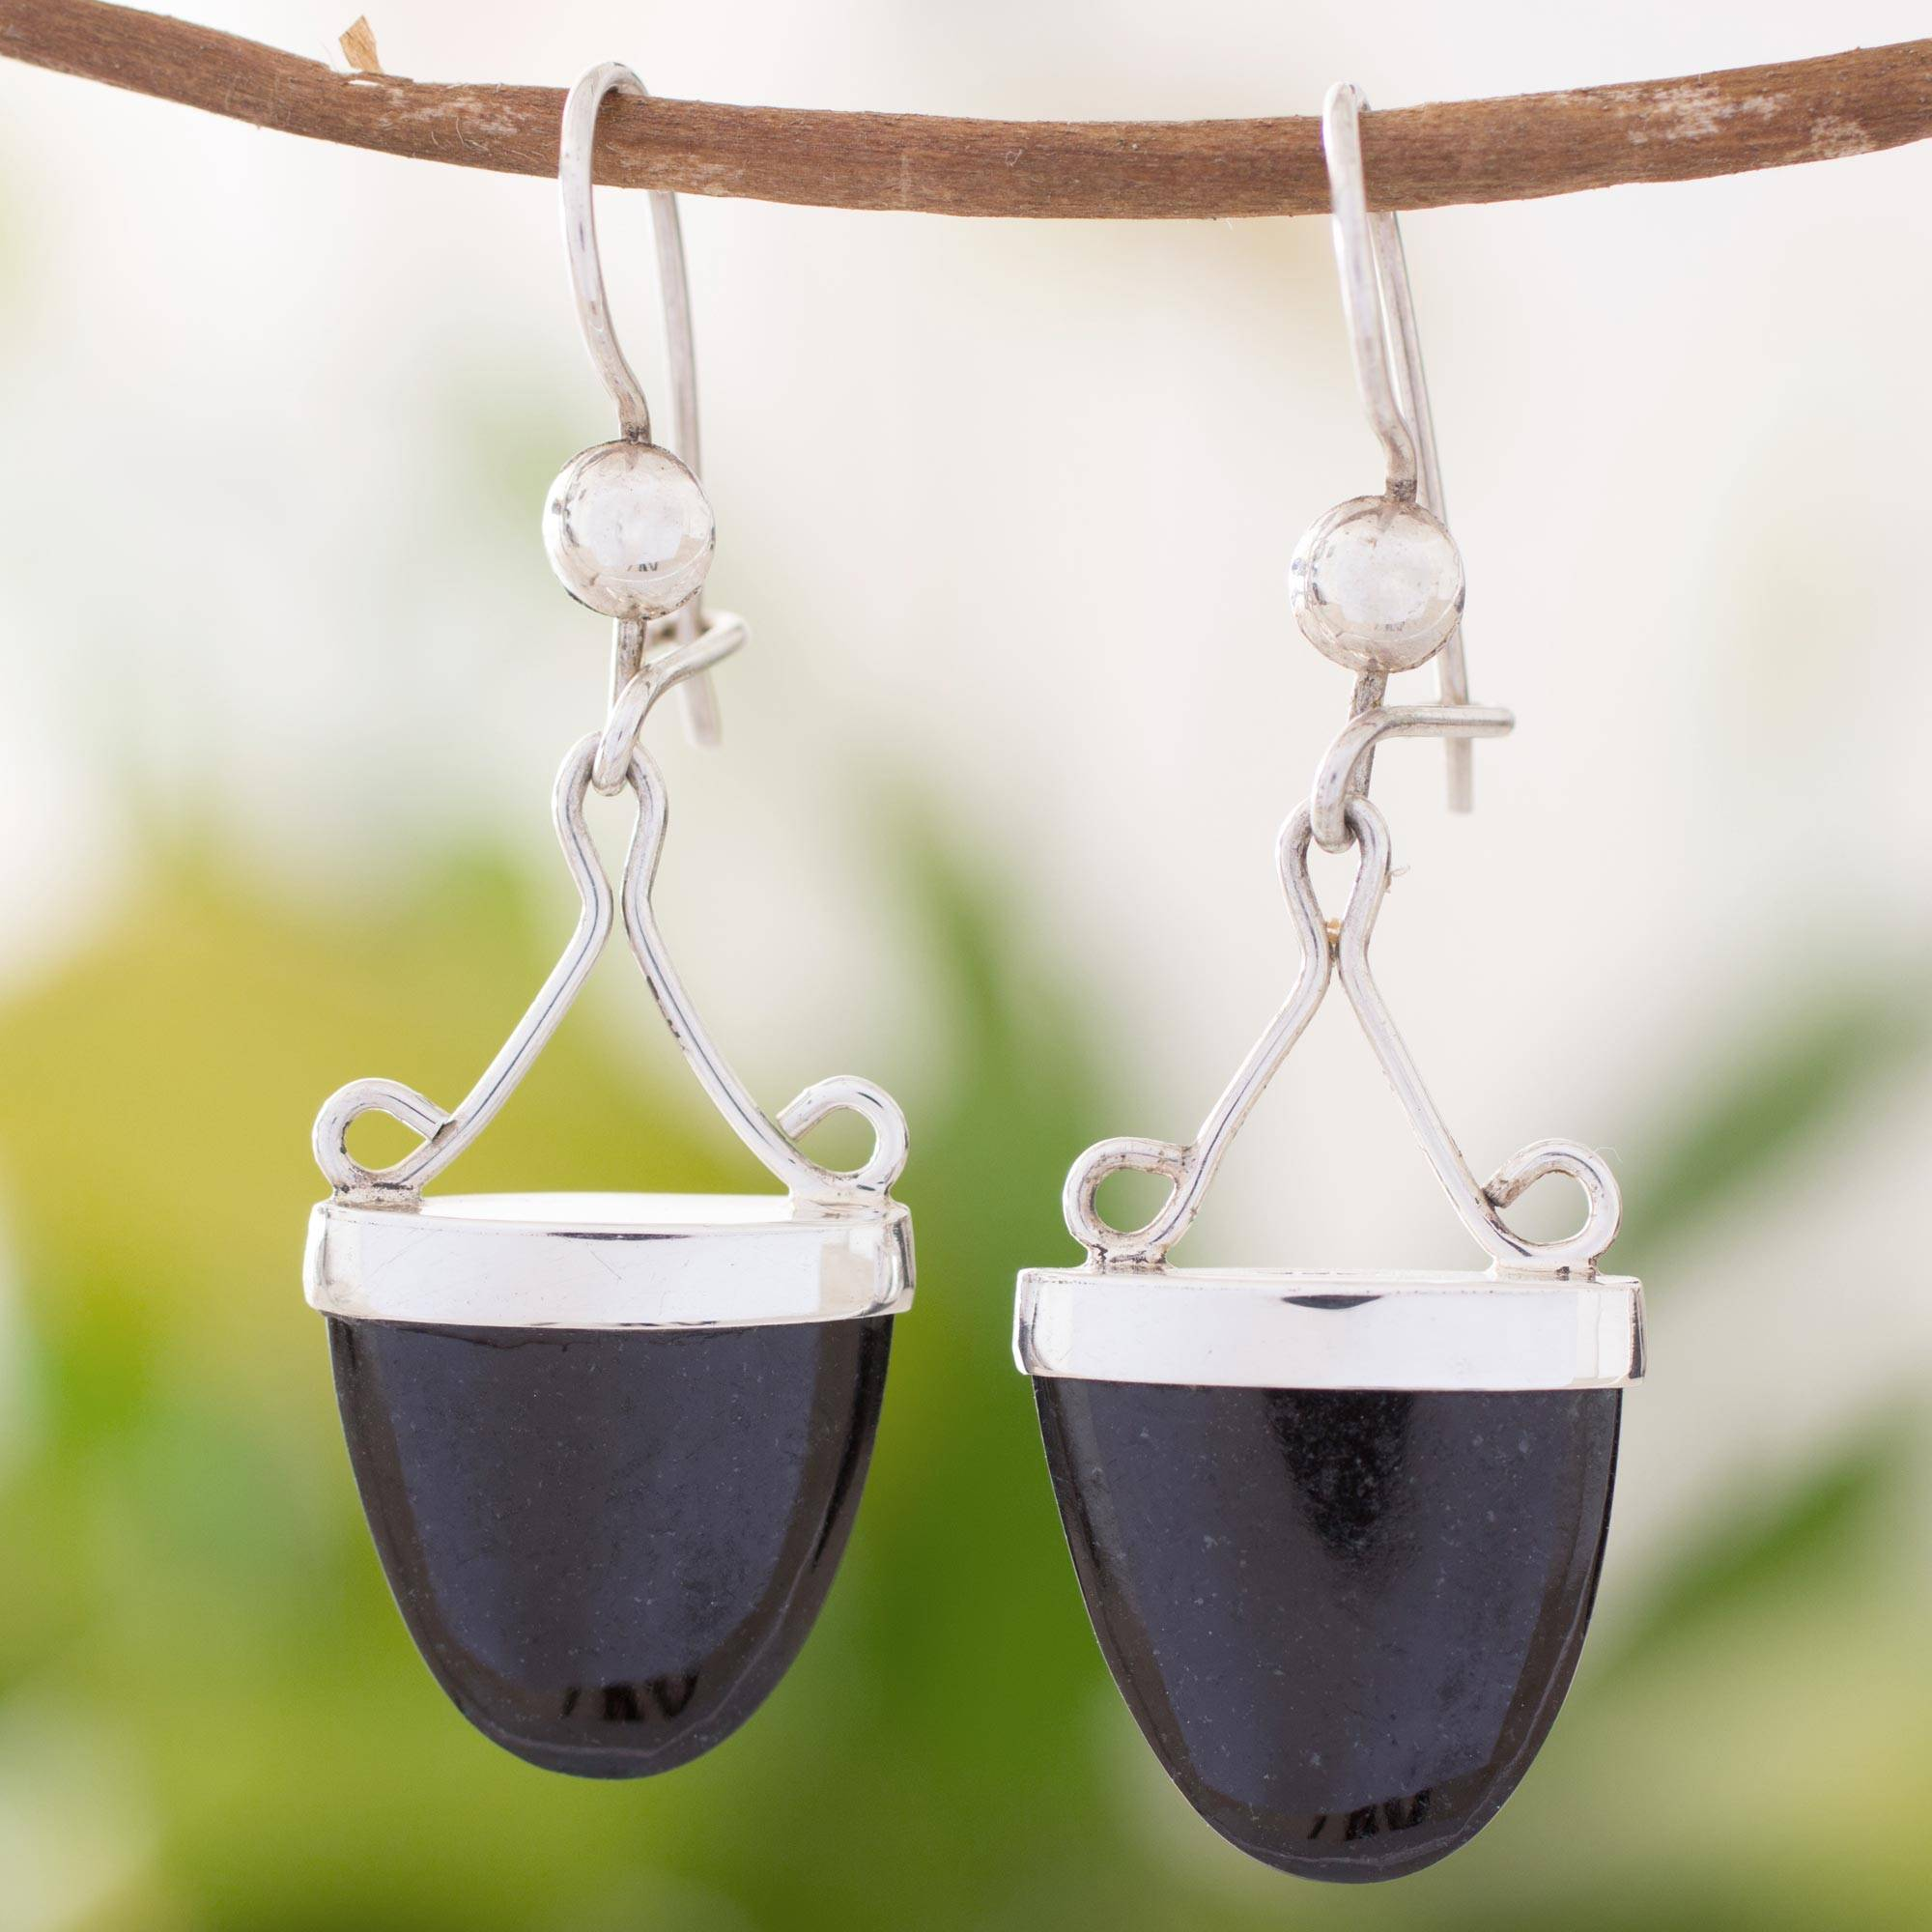 'Power of Life' Artisan Crafted Black Jade and Sterling Silver Earrings